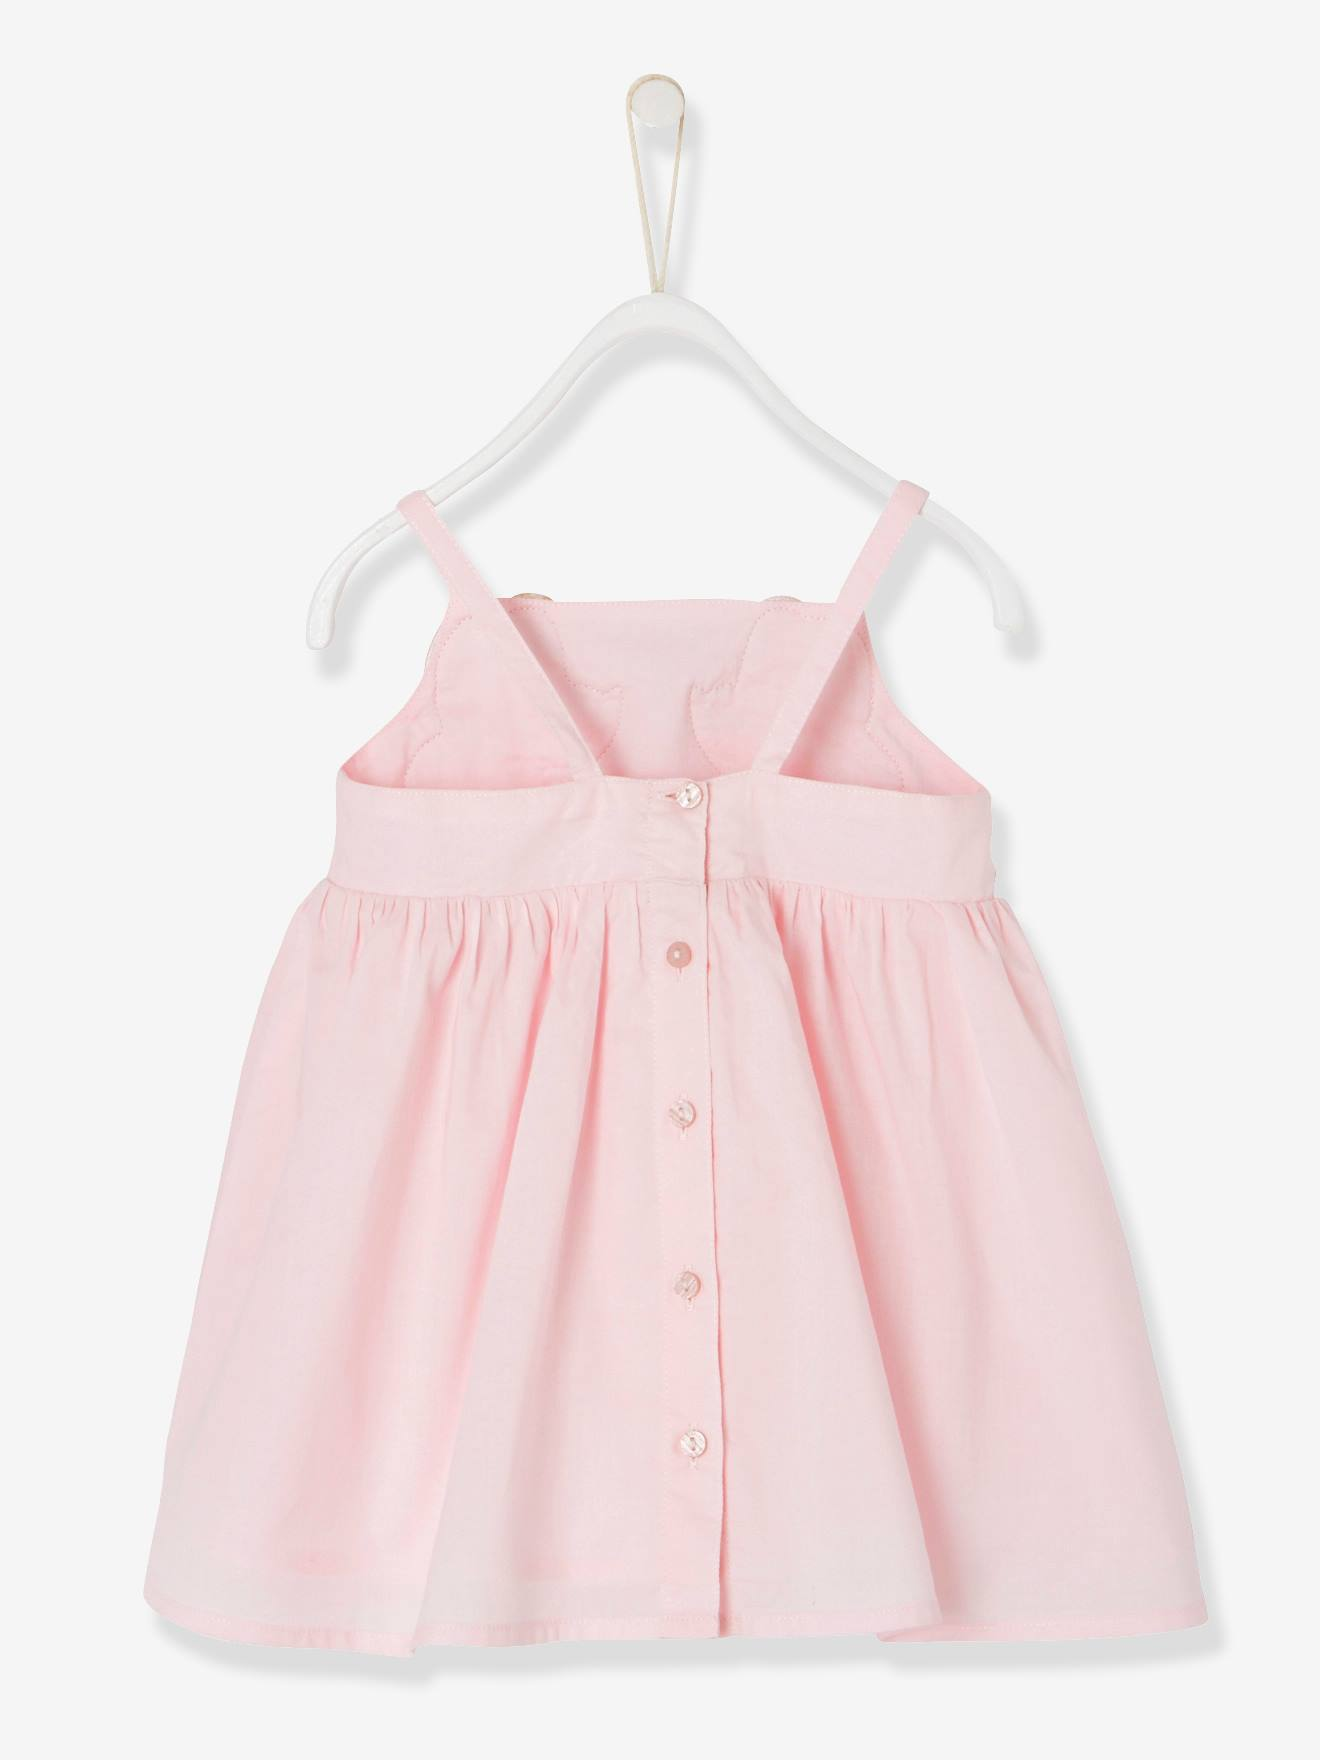 b3486542453f Baby Girls  Dress with Spaghetti Straps - pink light solid with ...